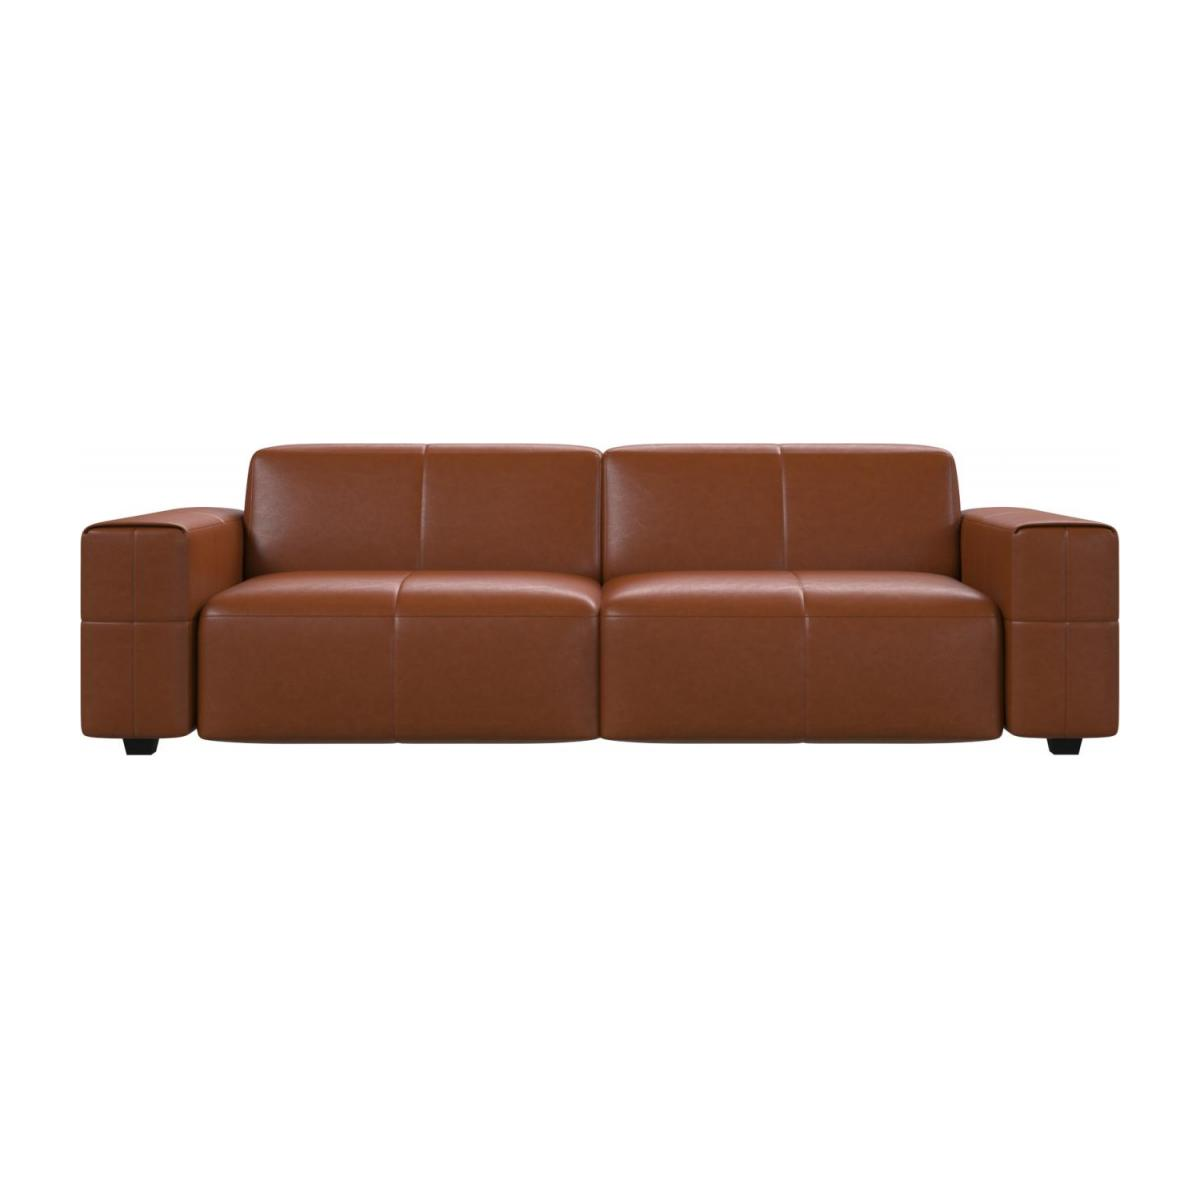 4 seater sofa in Vintage aniline leather, old chestnut n°2